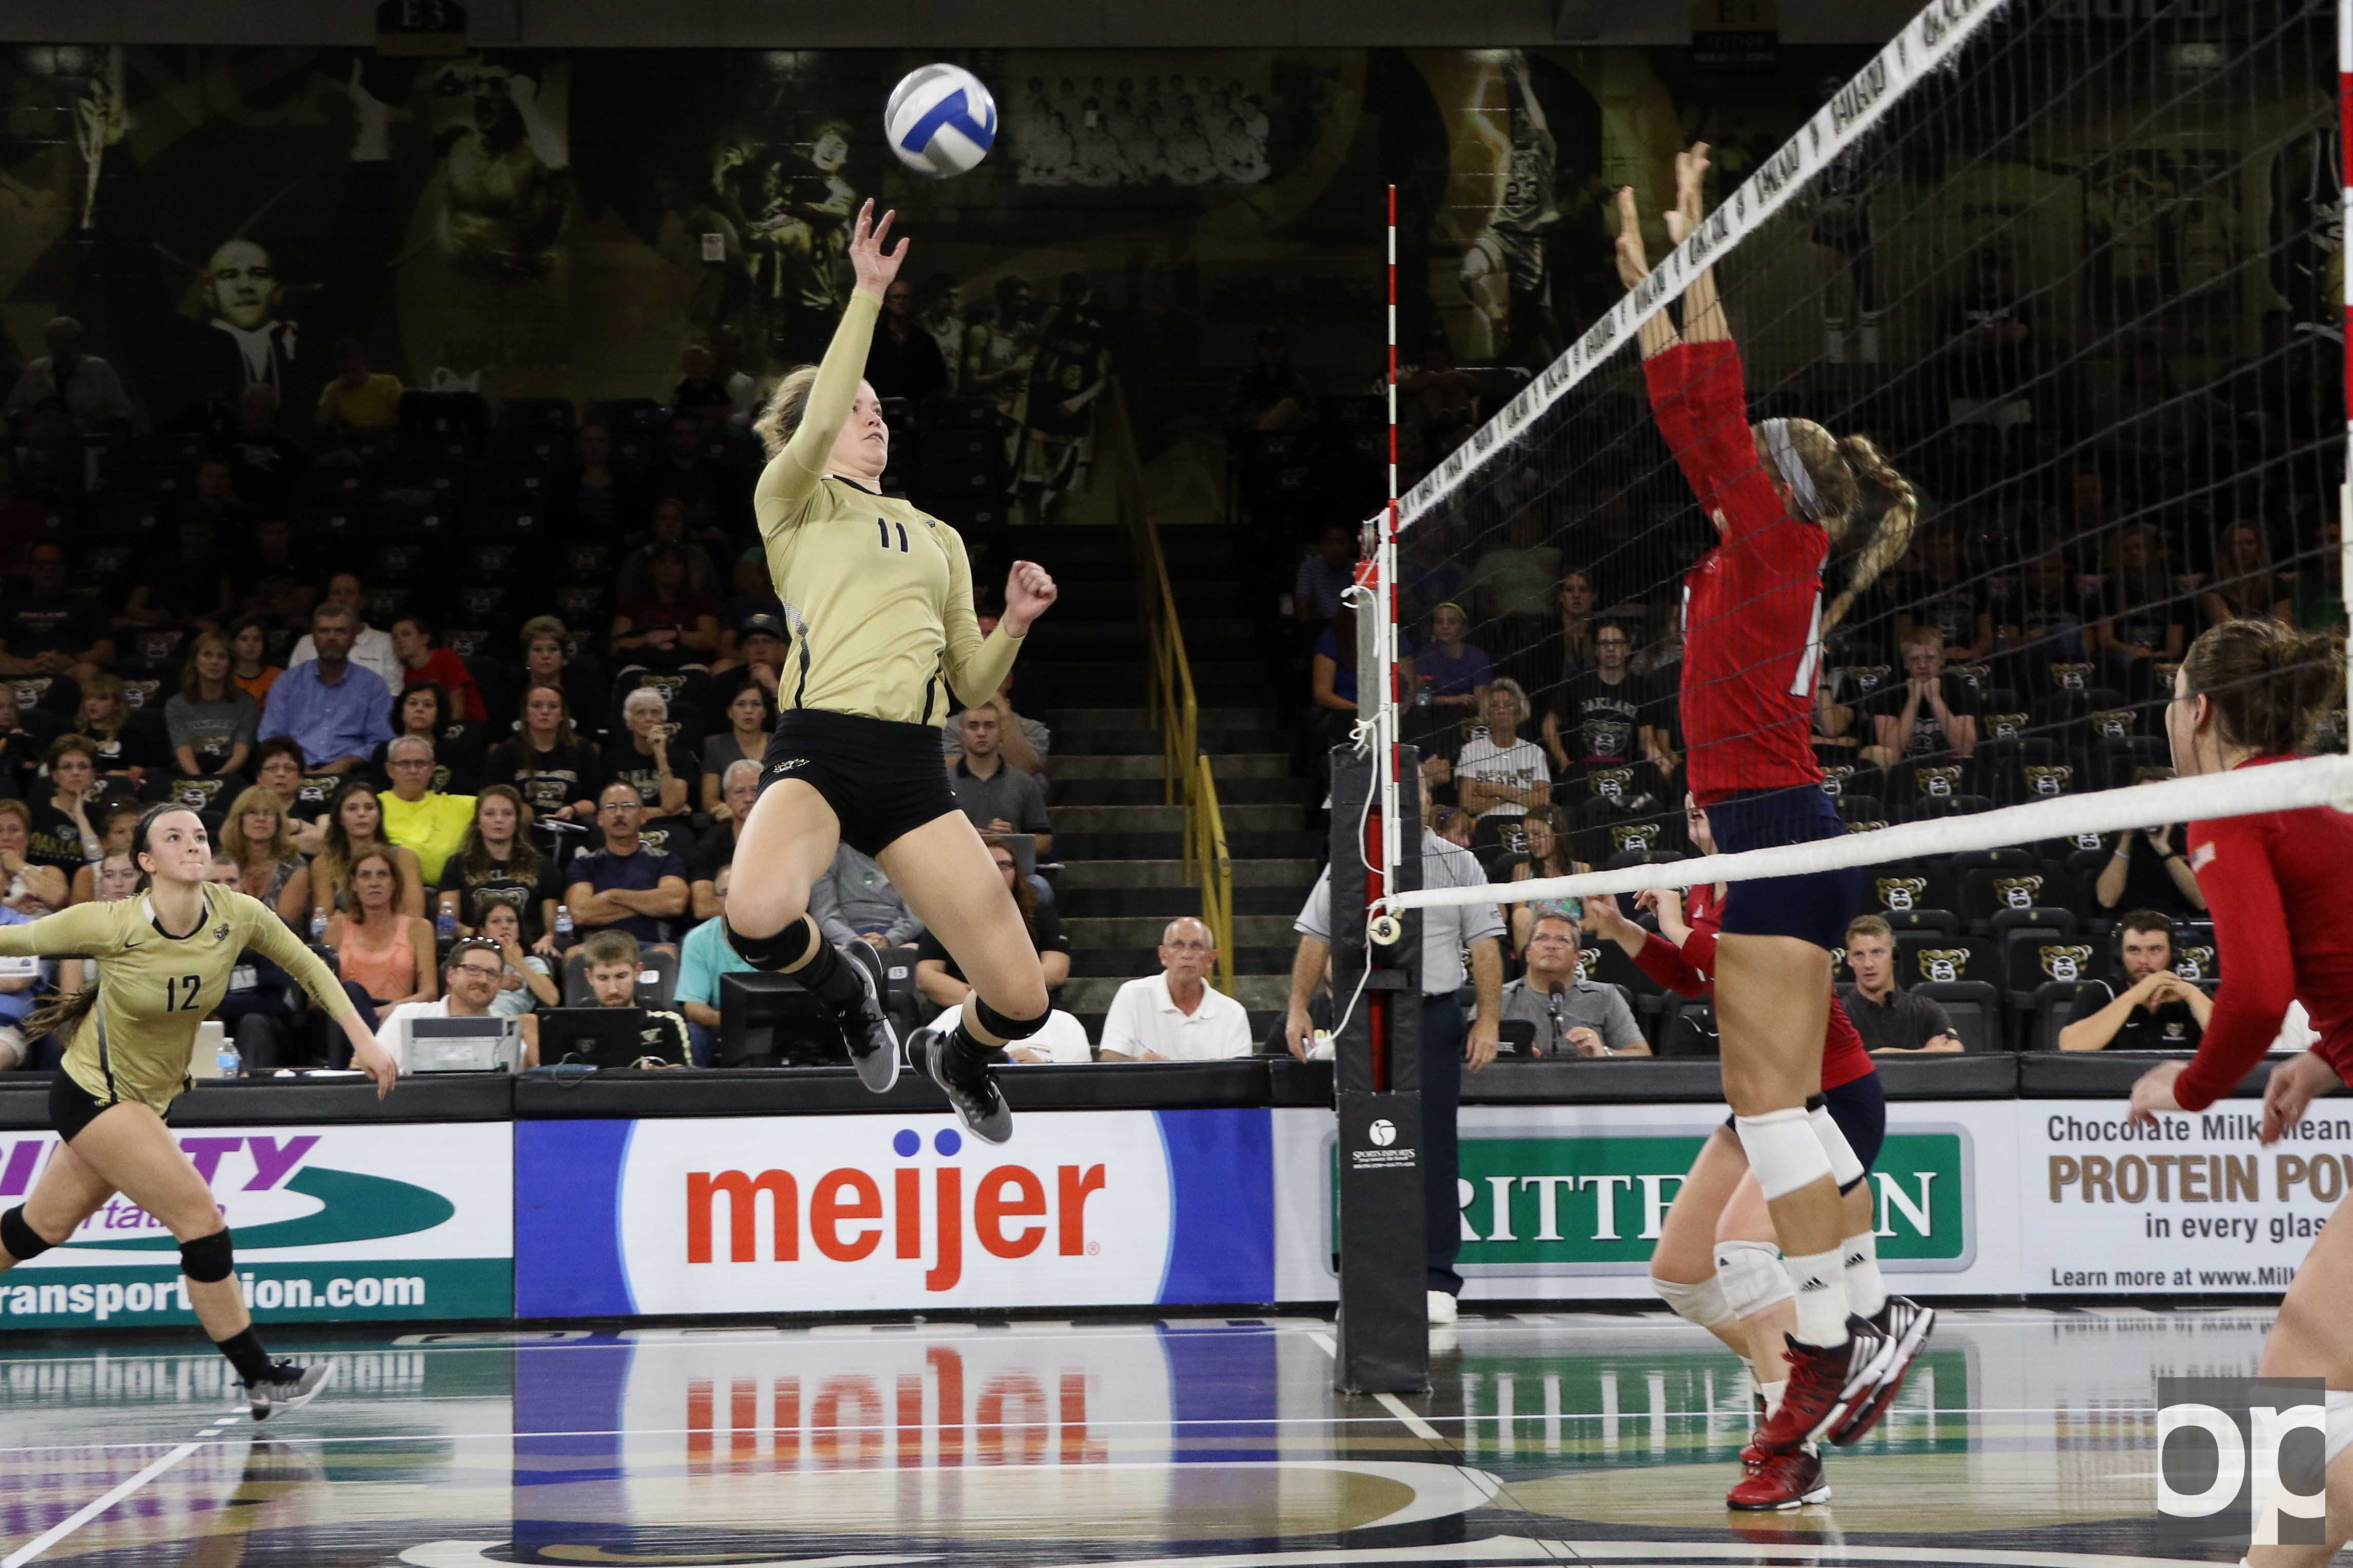 Sammy Condon recorded 14 kills at the game against UIC.